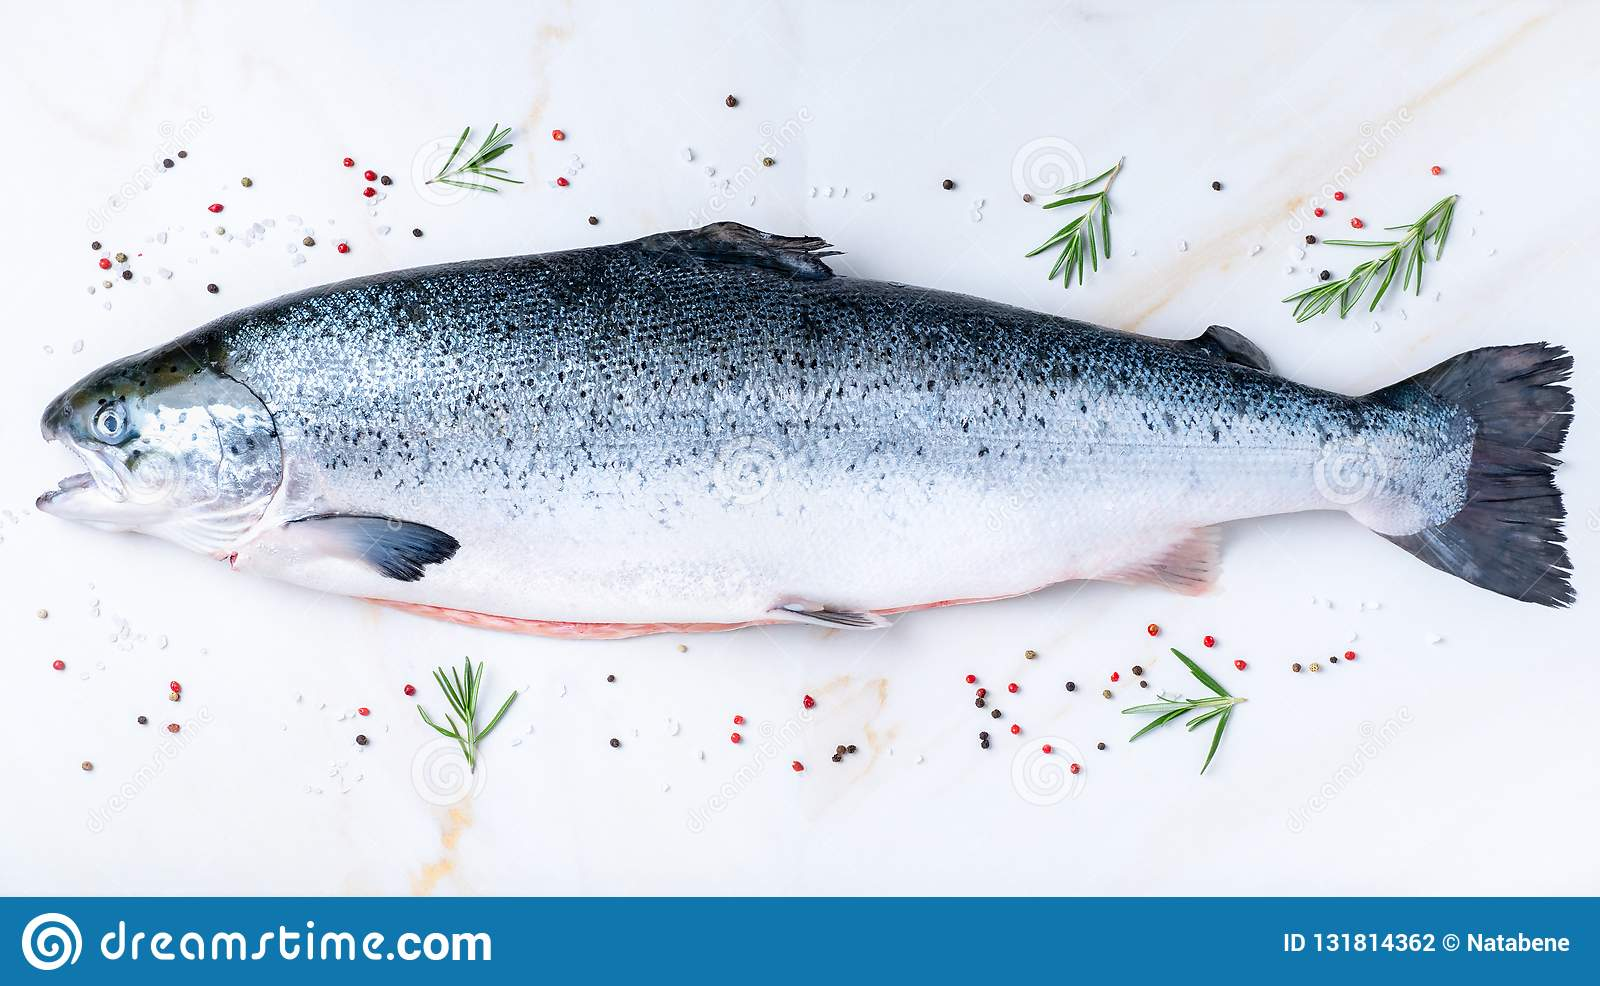 whole fresh raw big salmon fish with seasoning, salt, pepper, rosemary on white marble table, top view, long banner format